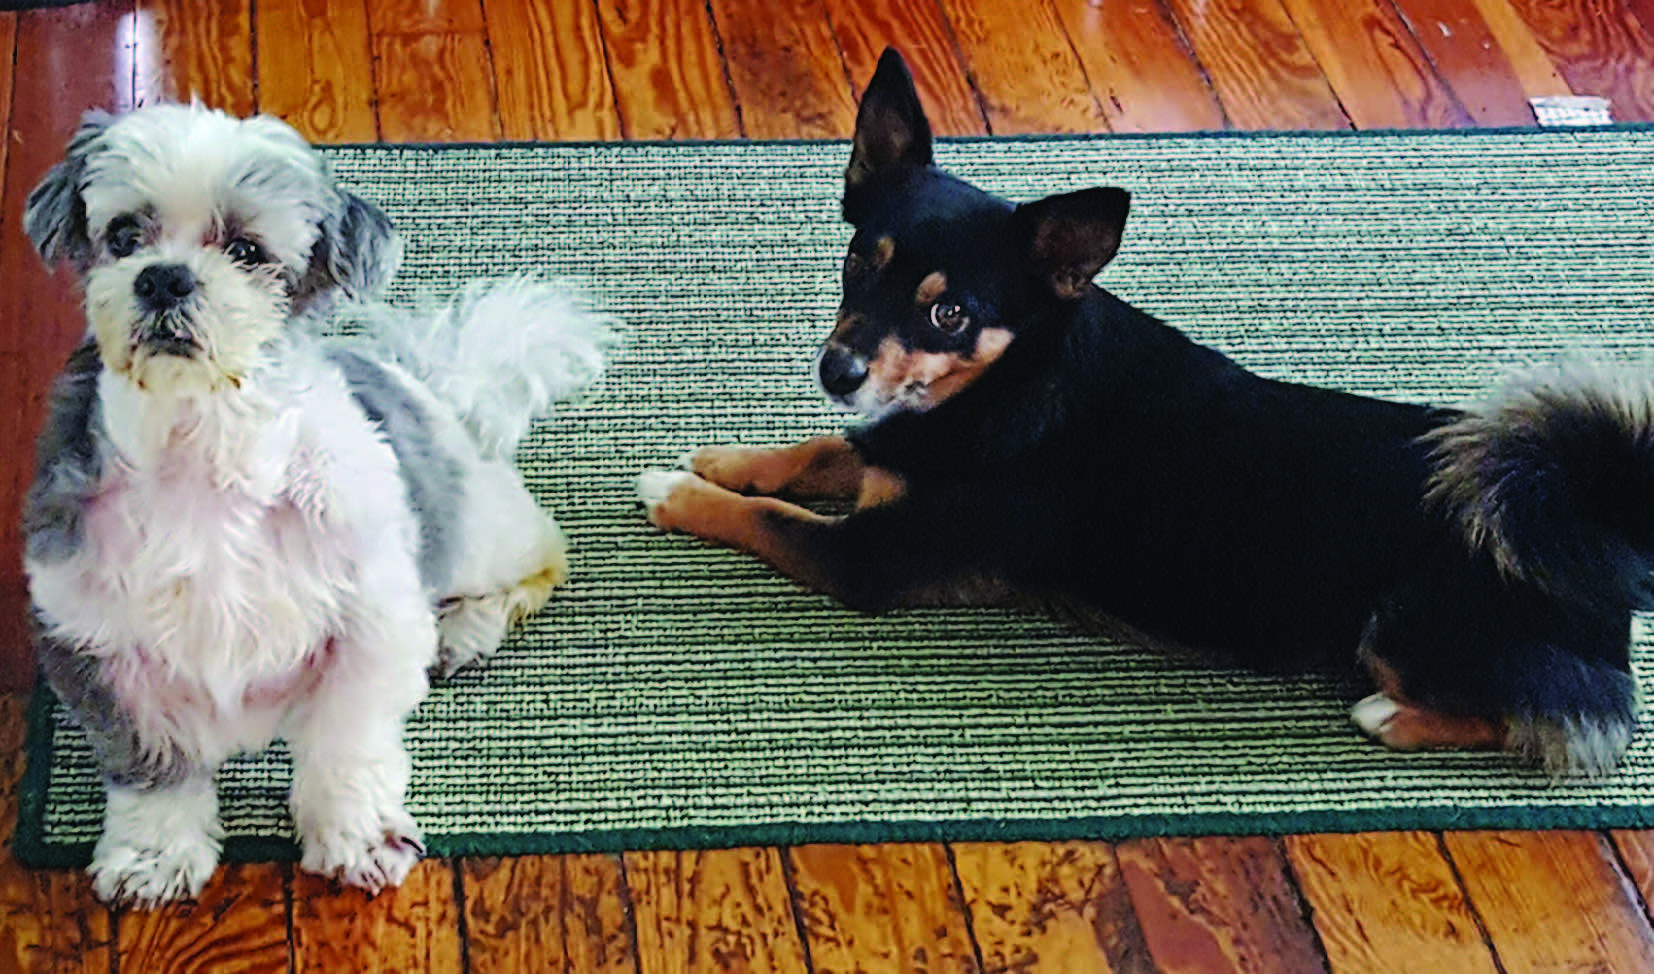 Mason (left) and Cora (right) belong to Judy Seplowin .